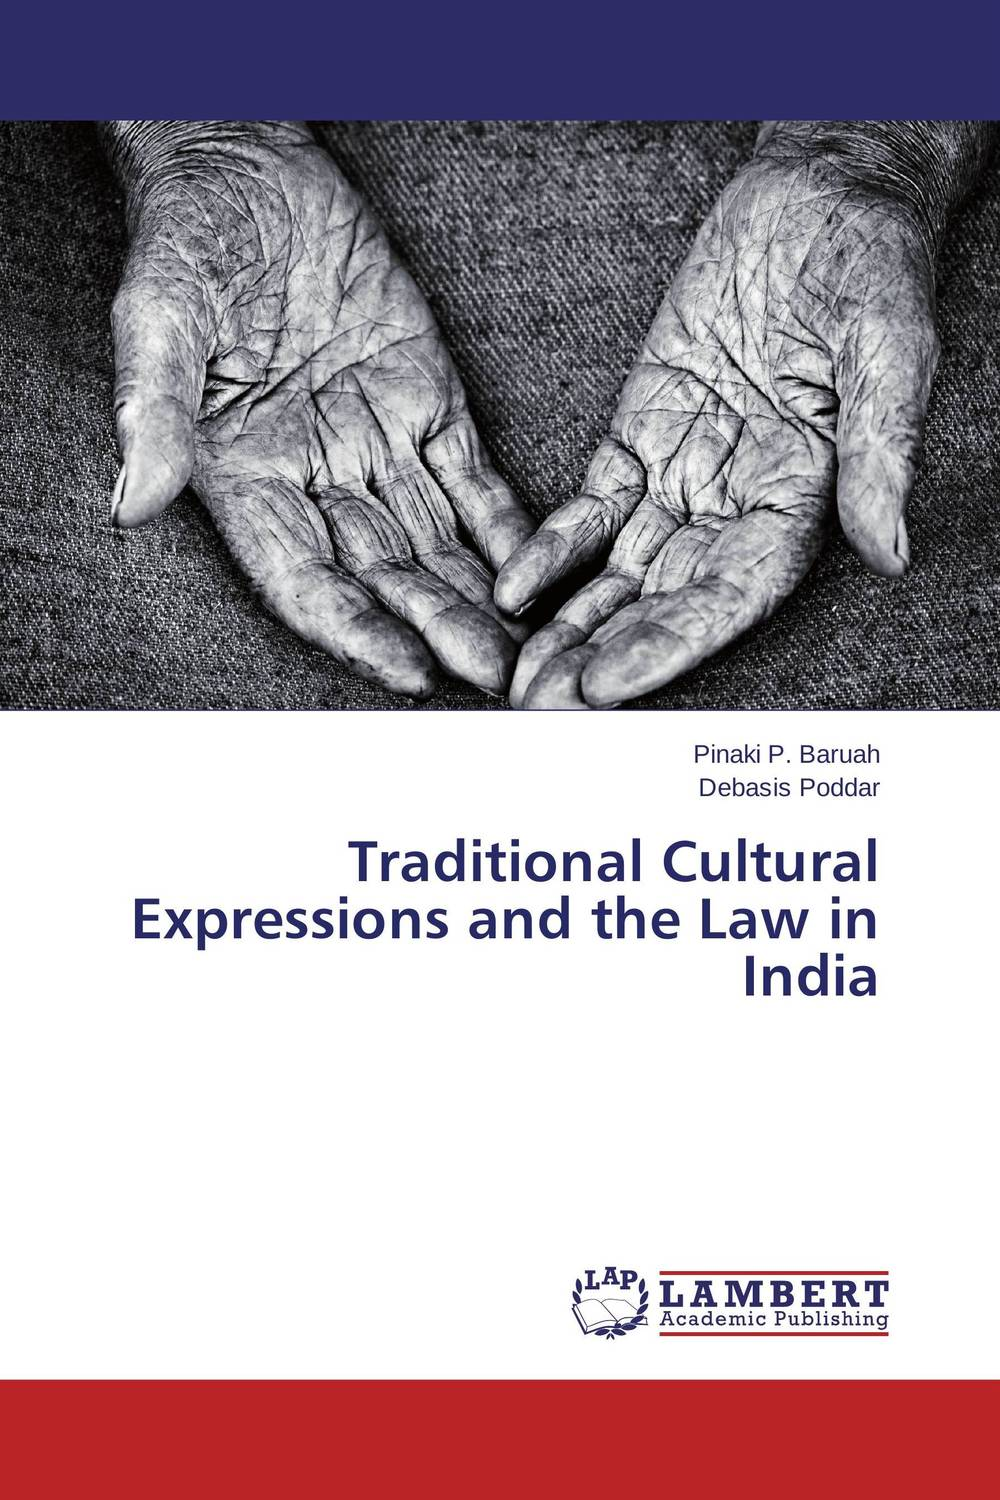 Traditional Cultural Expressions and the Law in India tobias h keller telecommunications law under the light of convergence